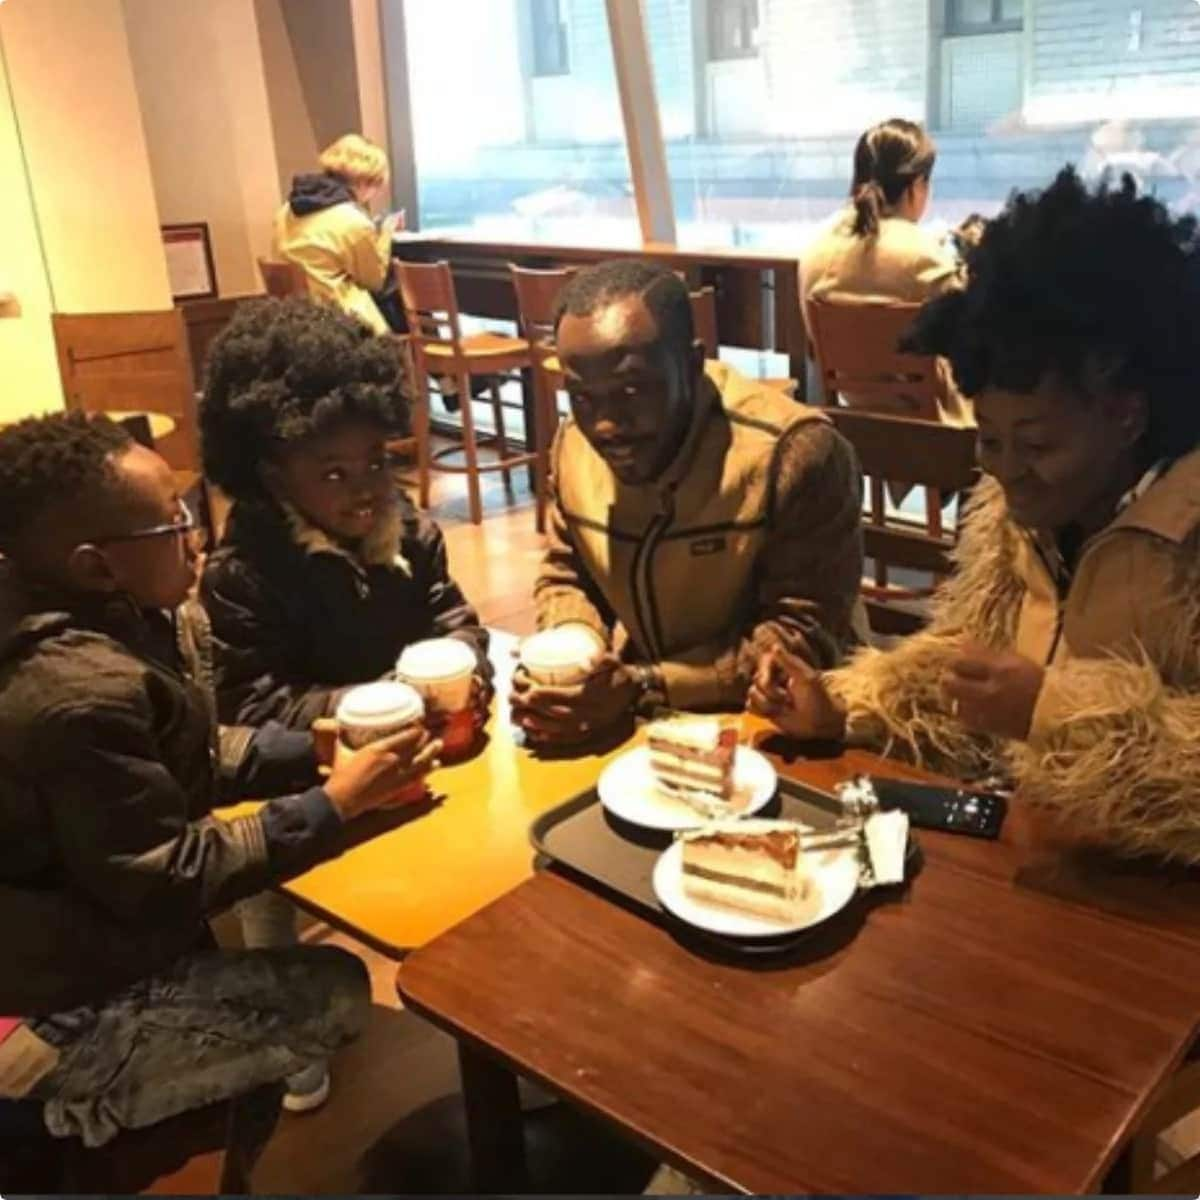 Okyeame Kwame shares more pictures from his trip with family